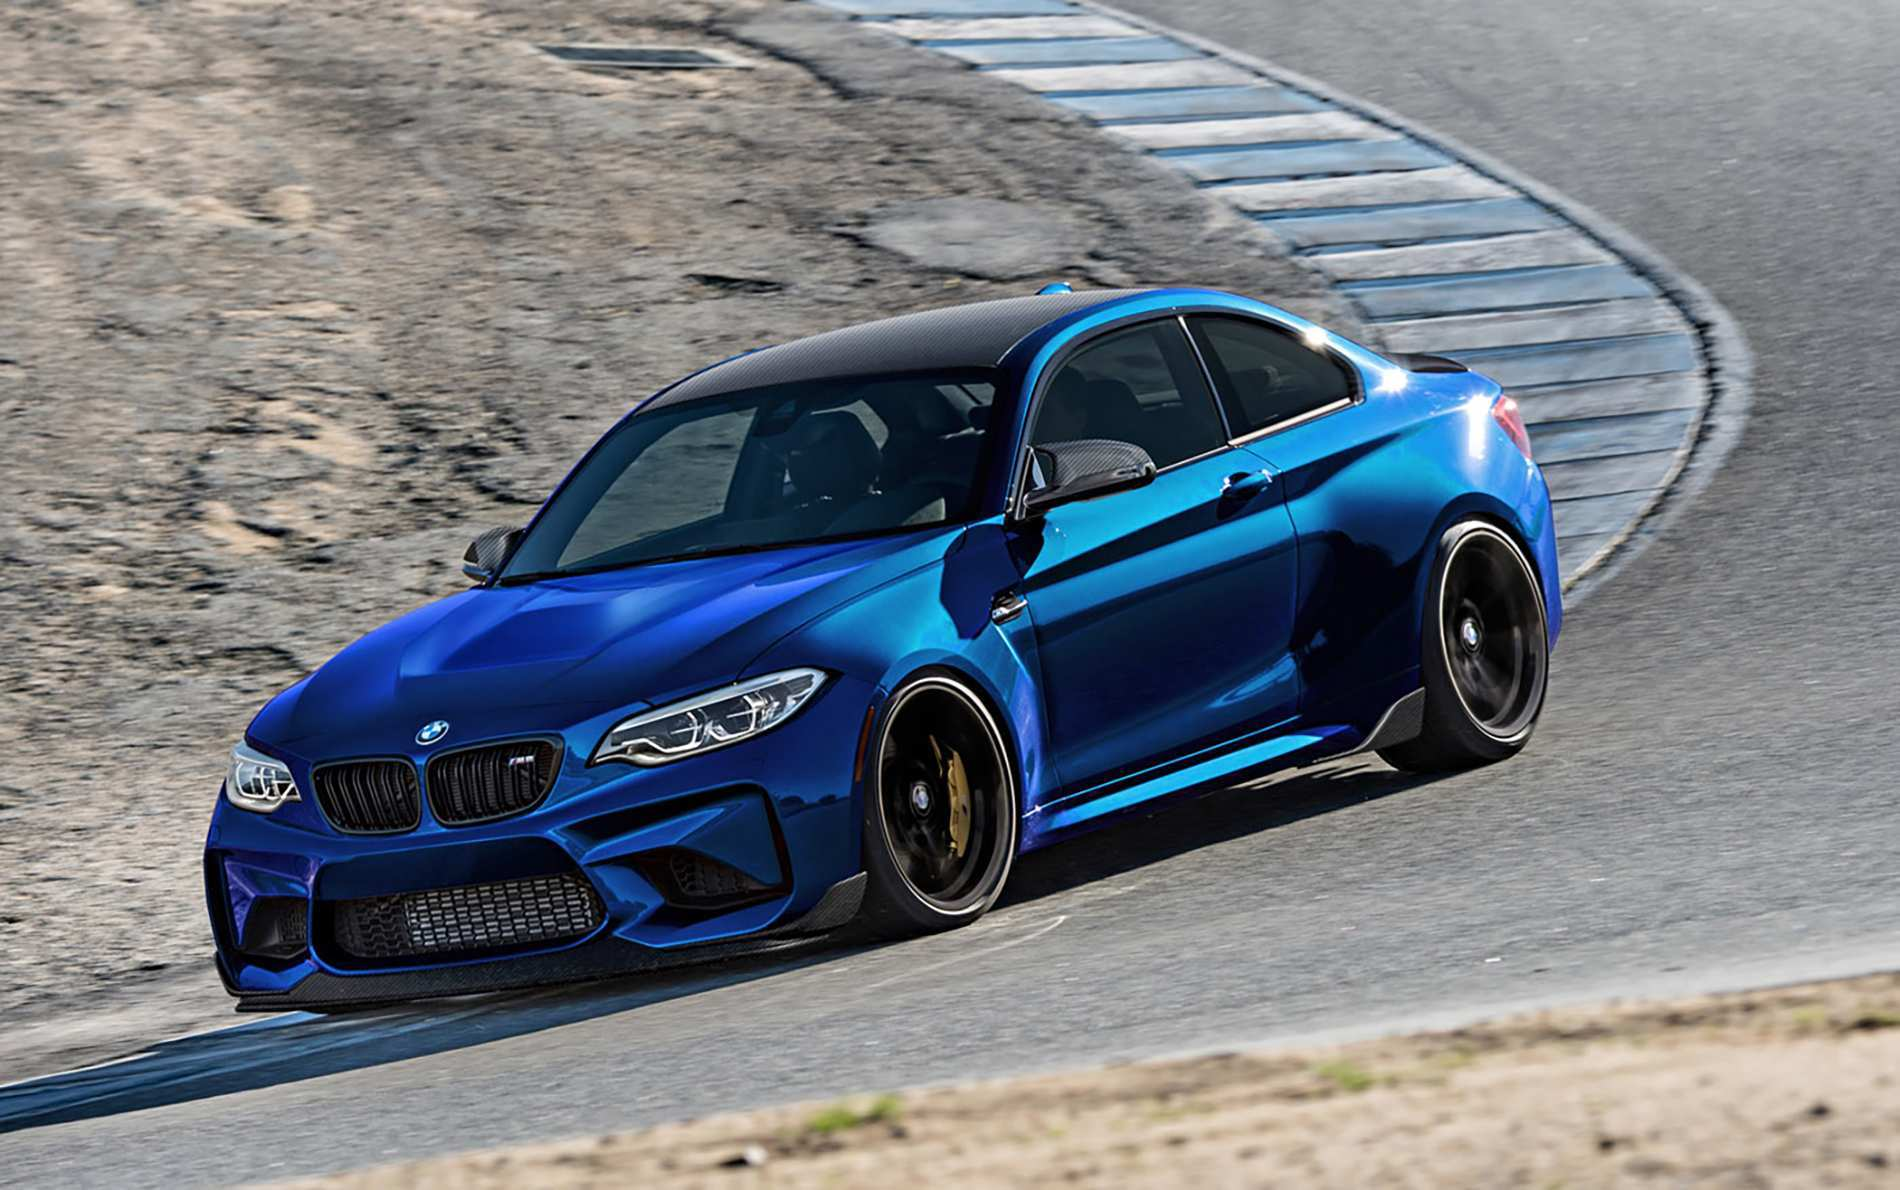 94 Gallery of 2020 BMW M2 Exterior and Interior for 2020 BMW M2